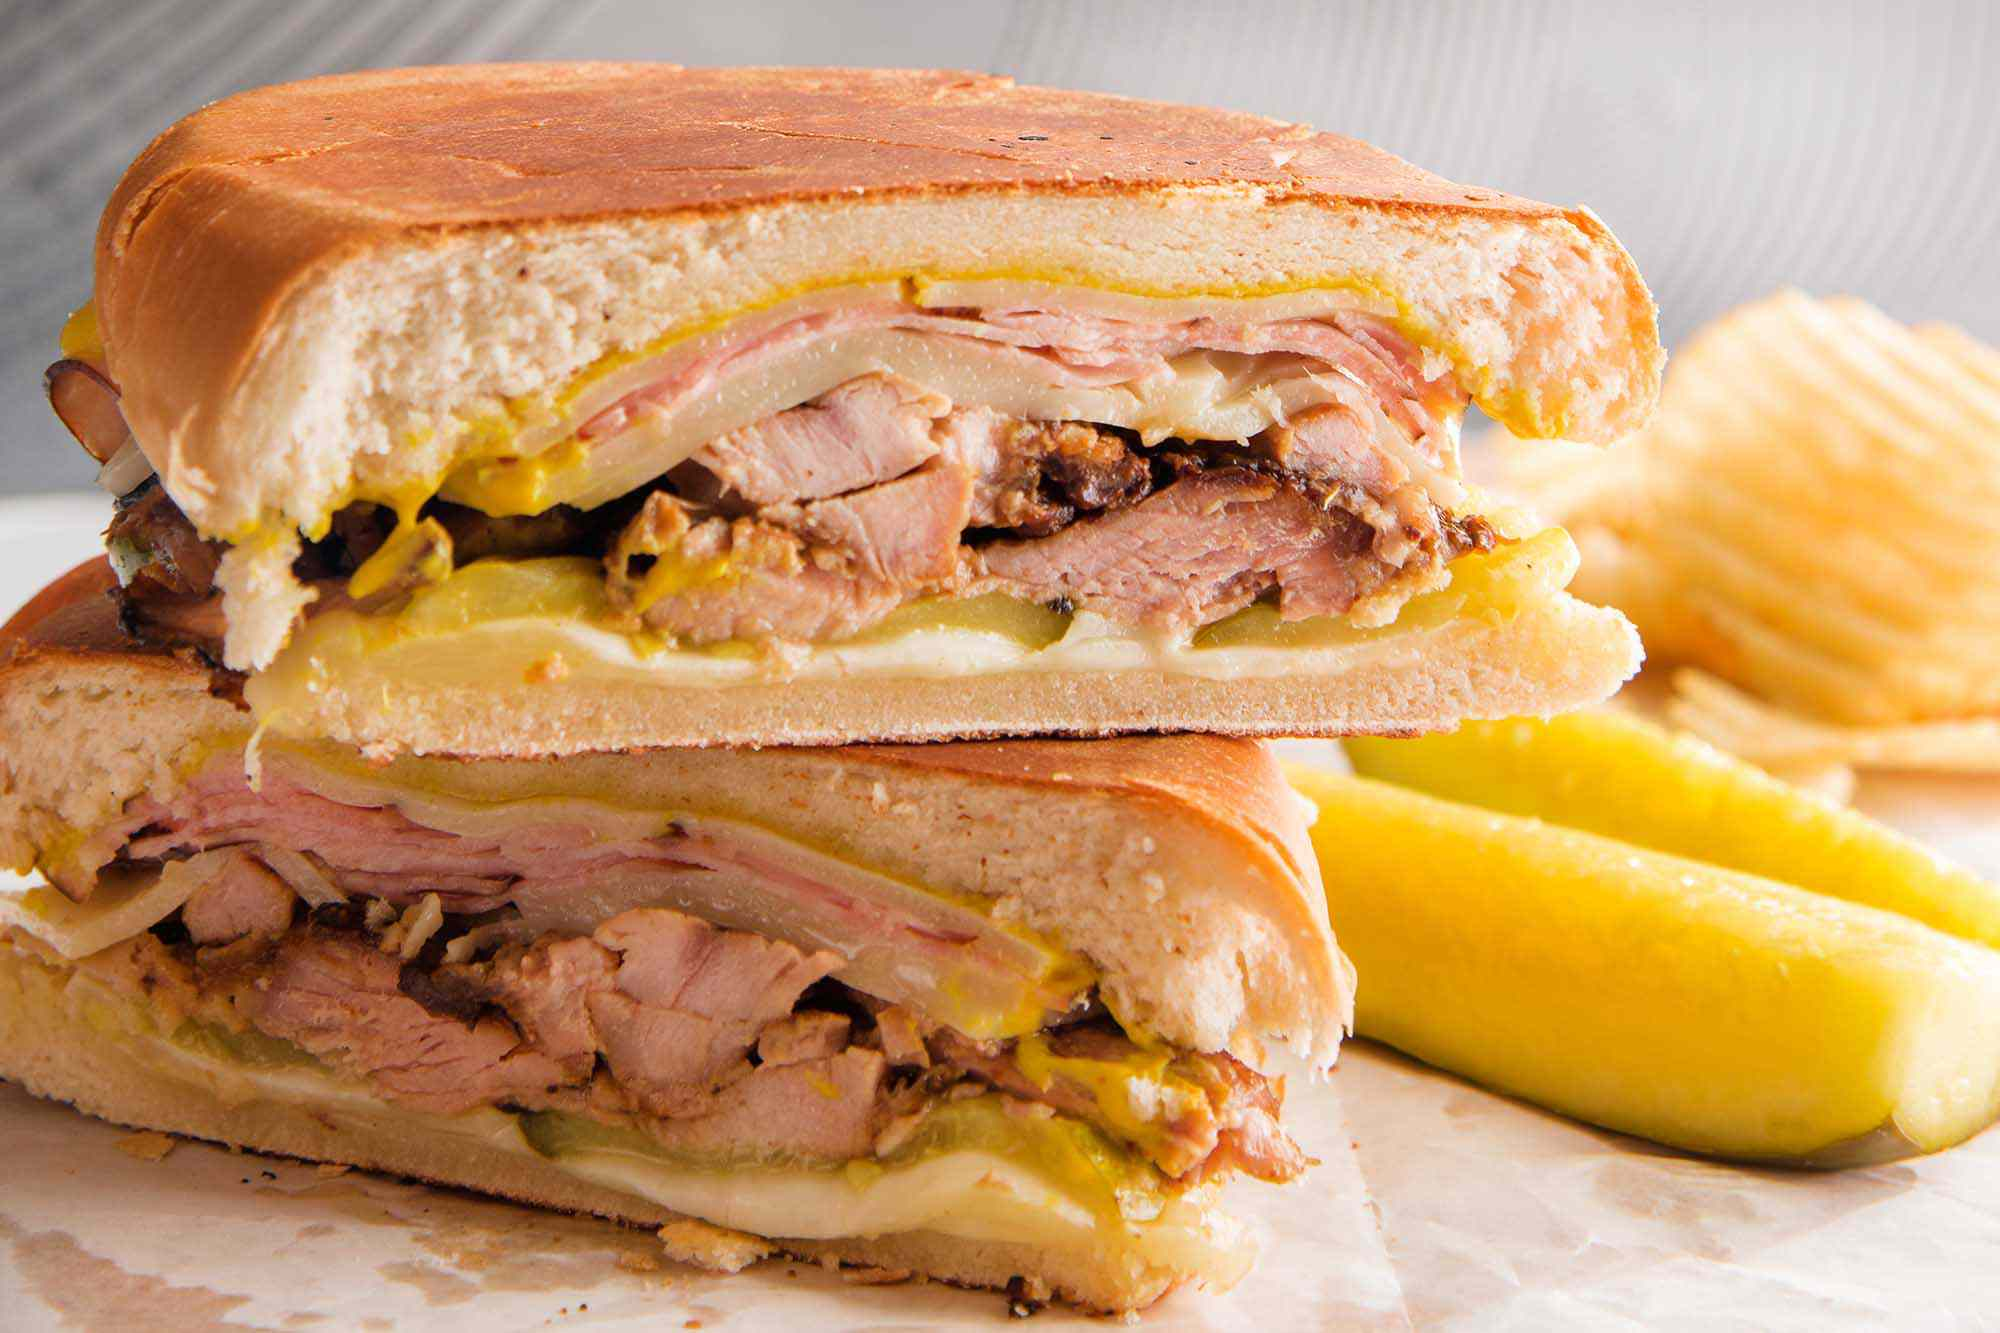 A grilled cuban sandwich is stacked on top of each other with shredded pork, mustard, cheese and pickles visible. Pickle spears and ridged potato chips are to the right of the sandwich.